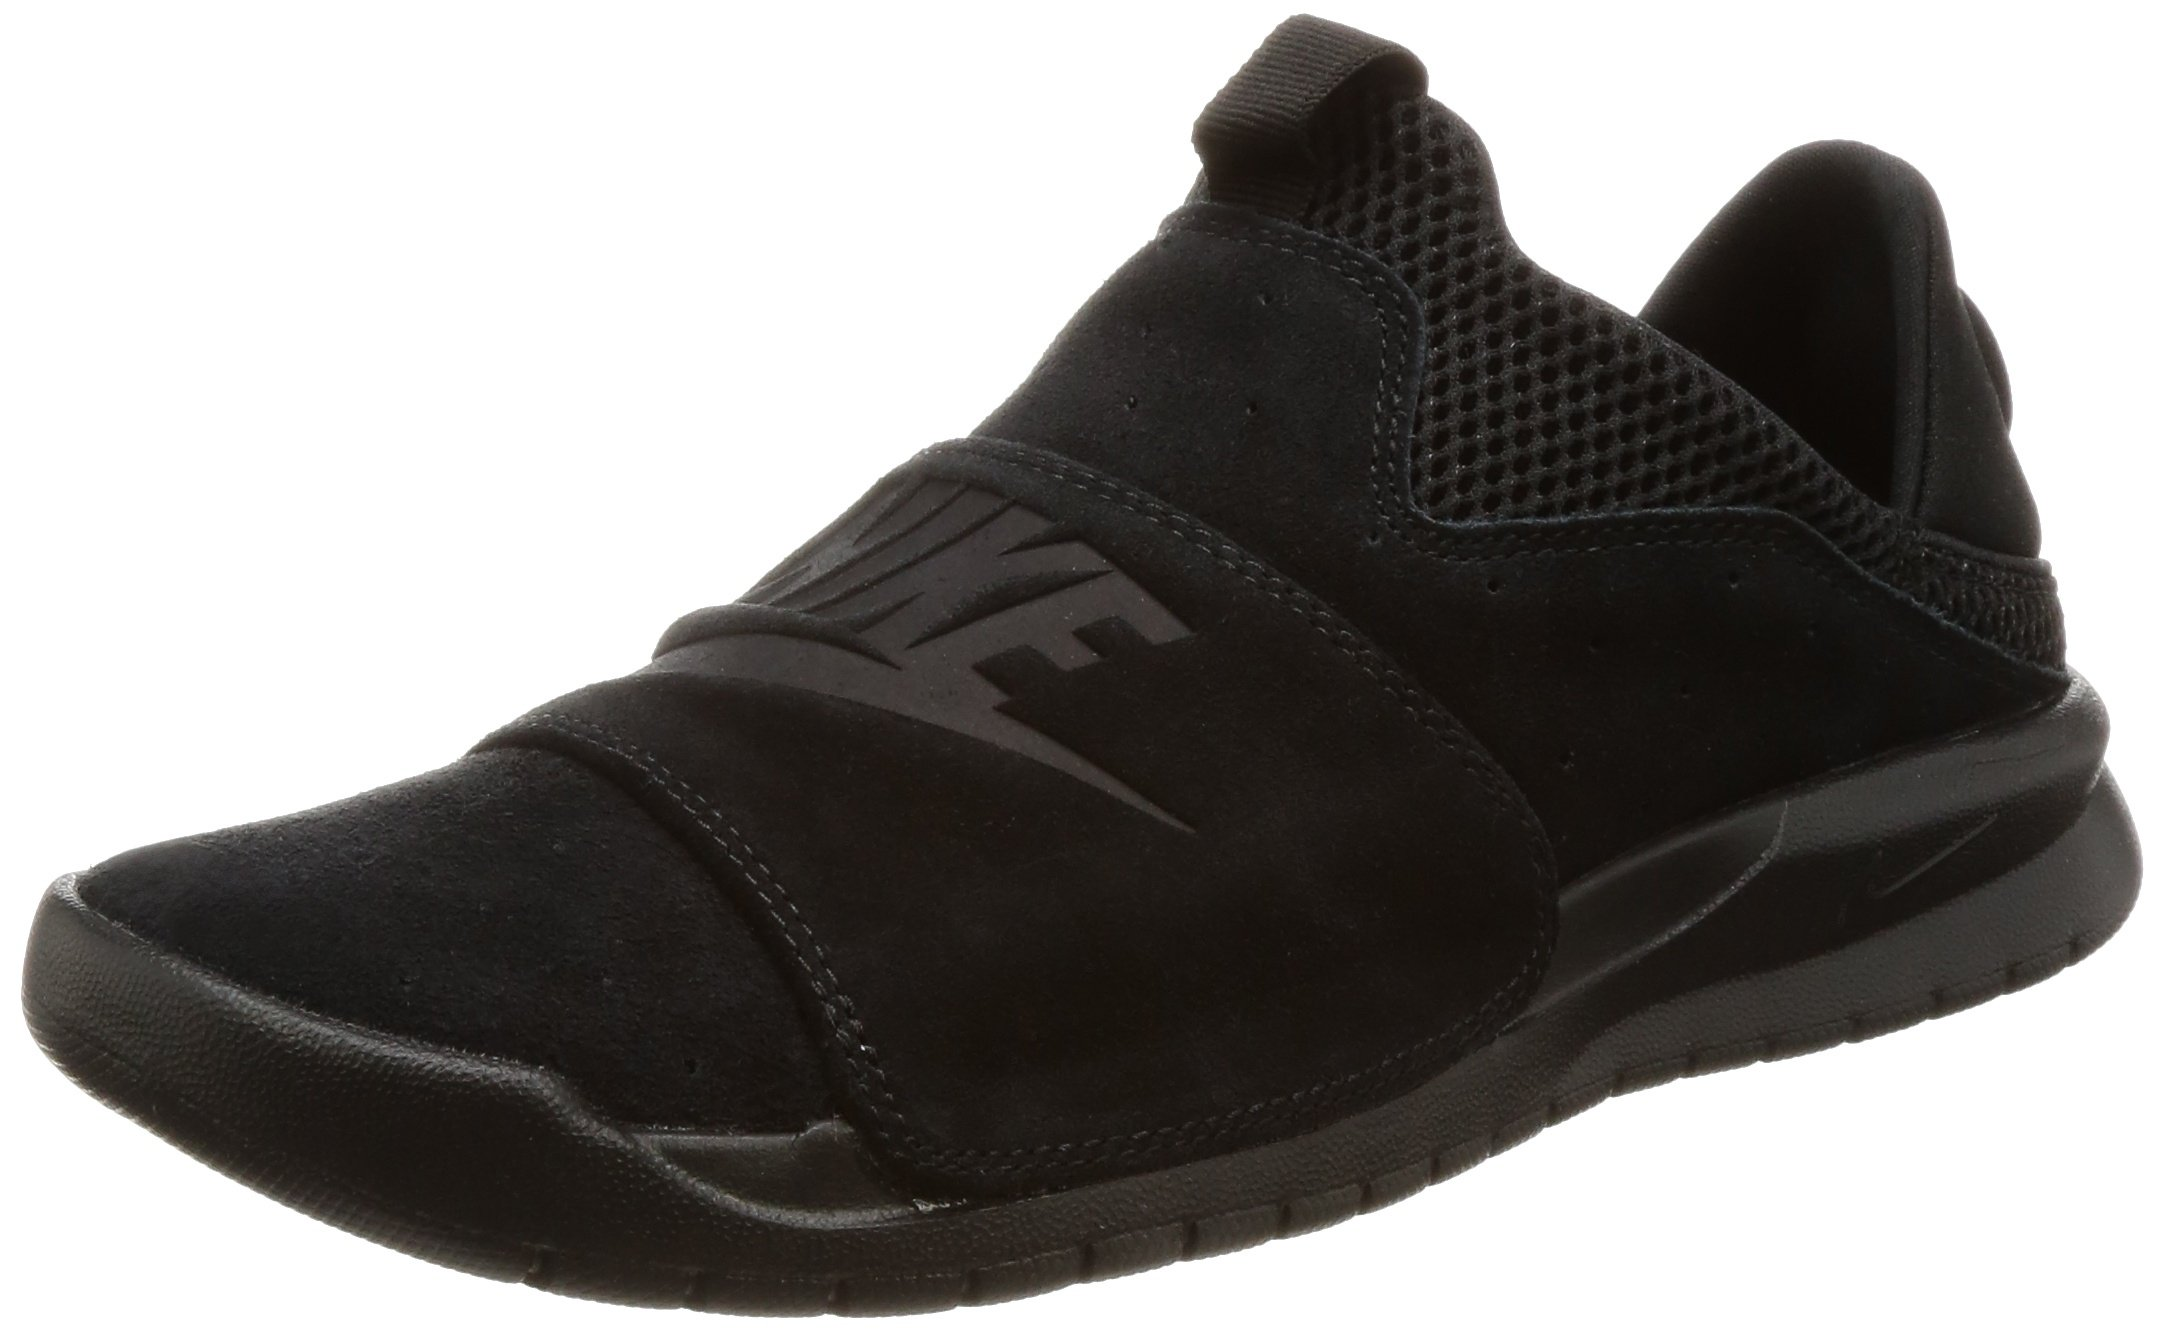 31c67a83a488 Galleon - Nike Benassi Slip Mens Lifestyle Sneakers Black Black Black  882410-003 (9 D(M) US)